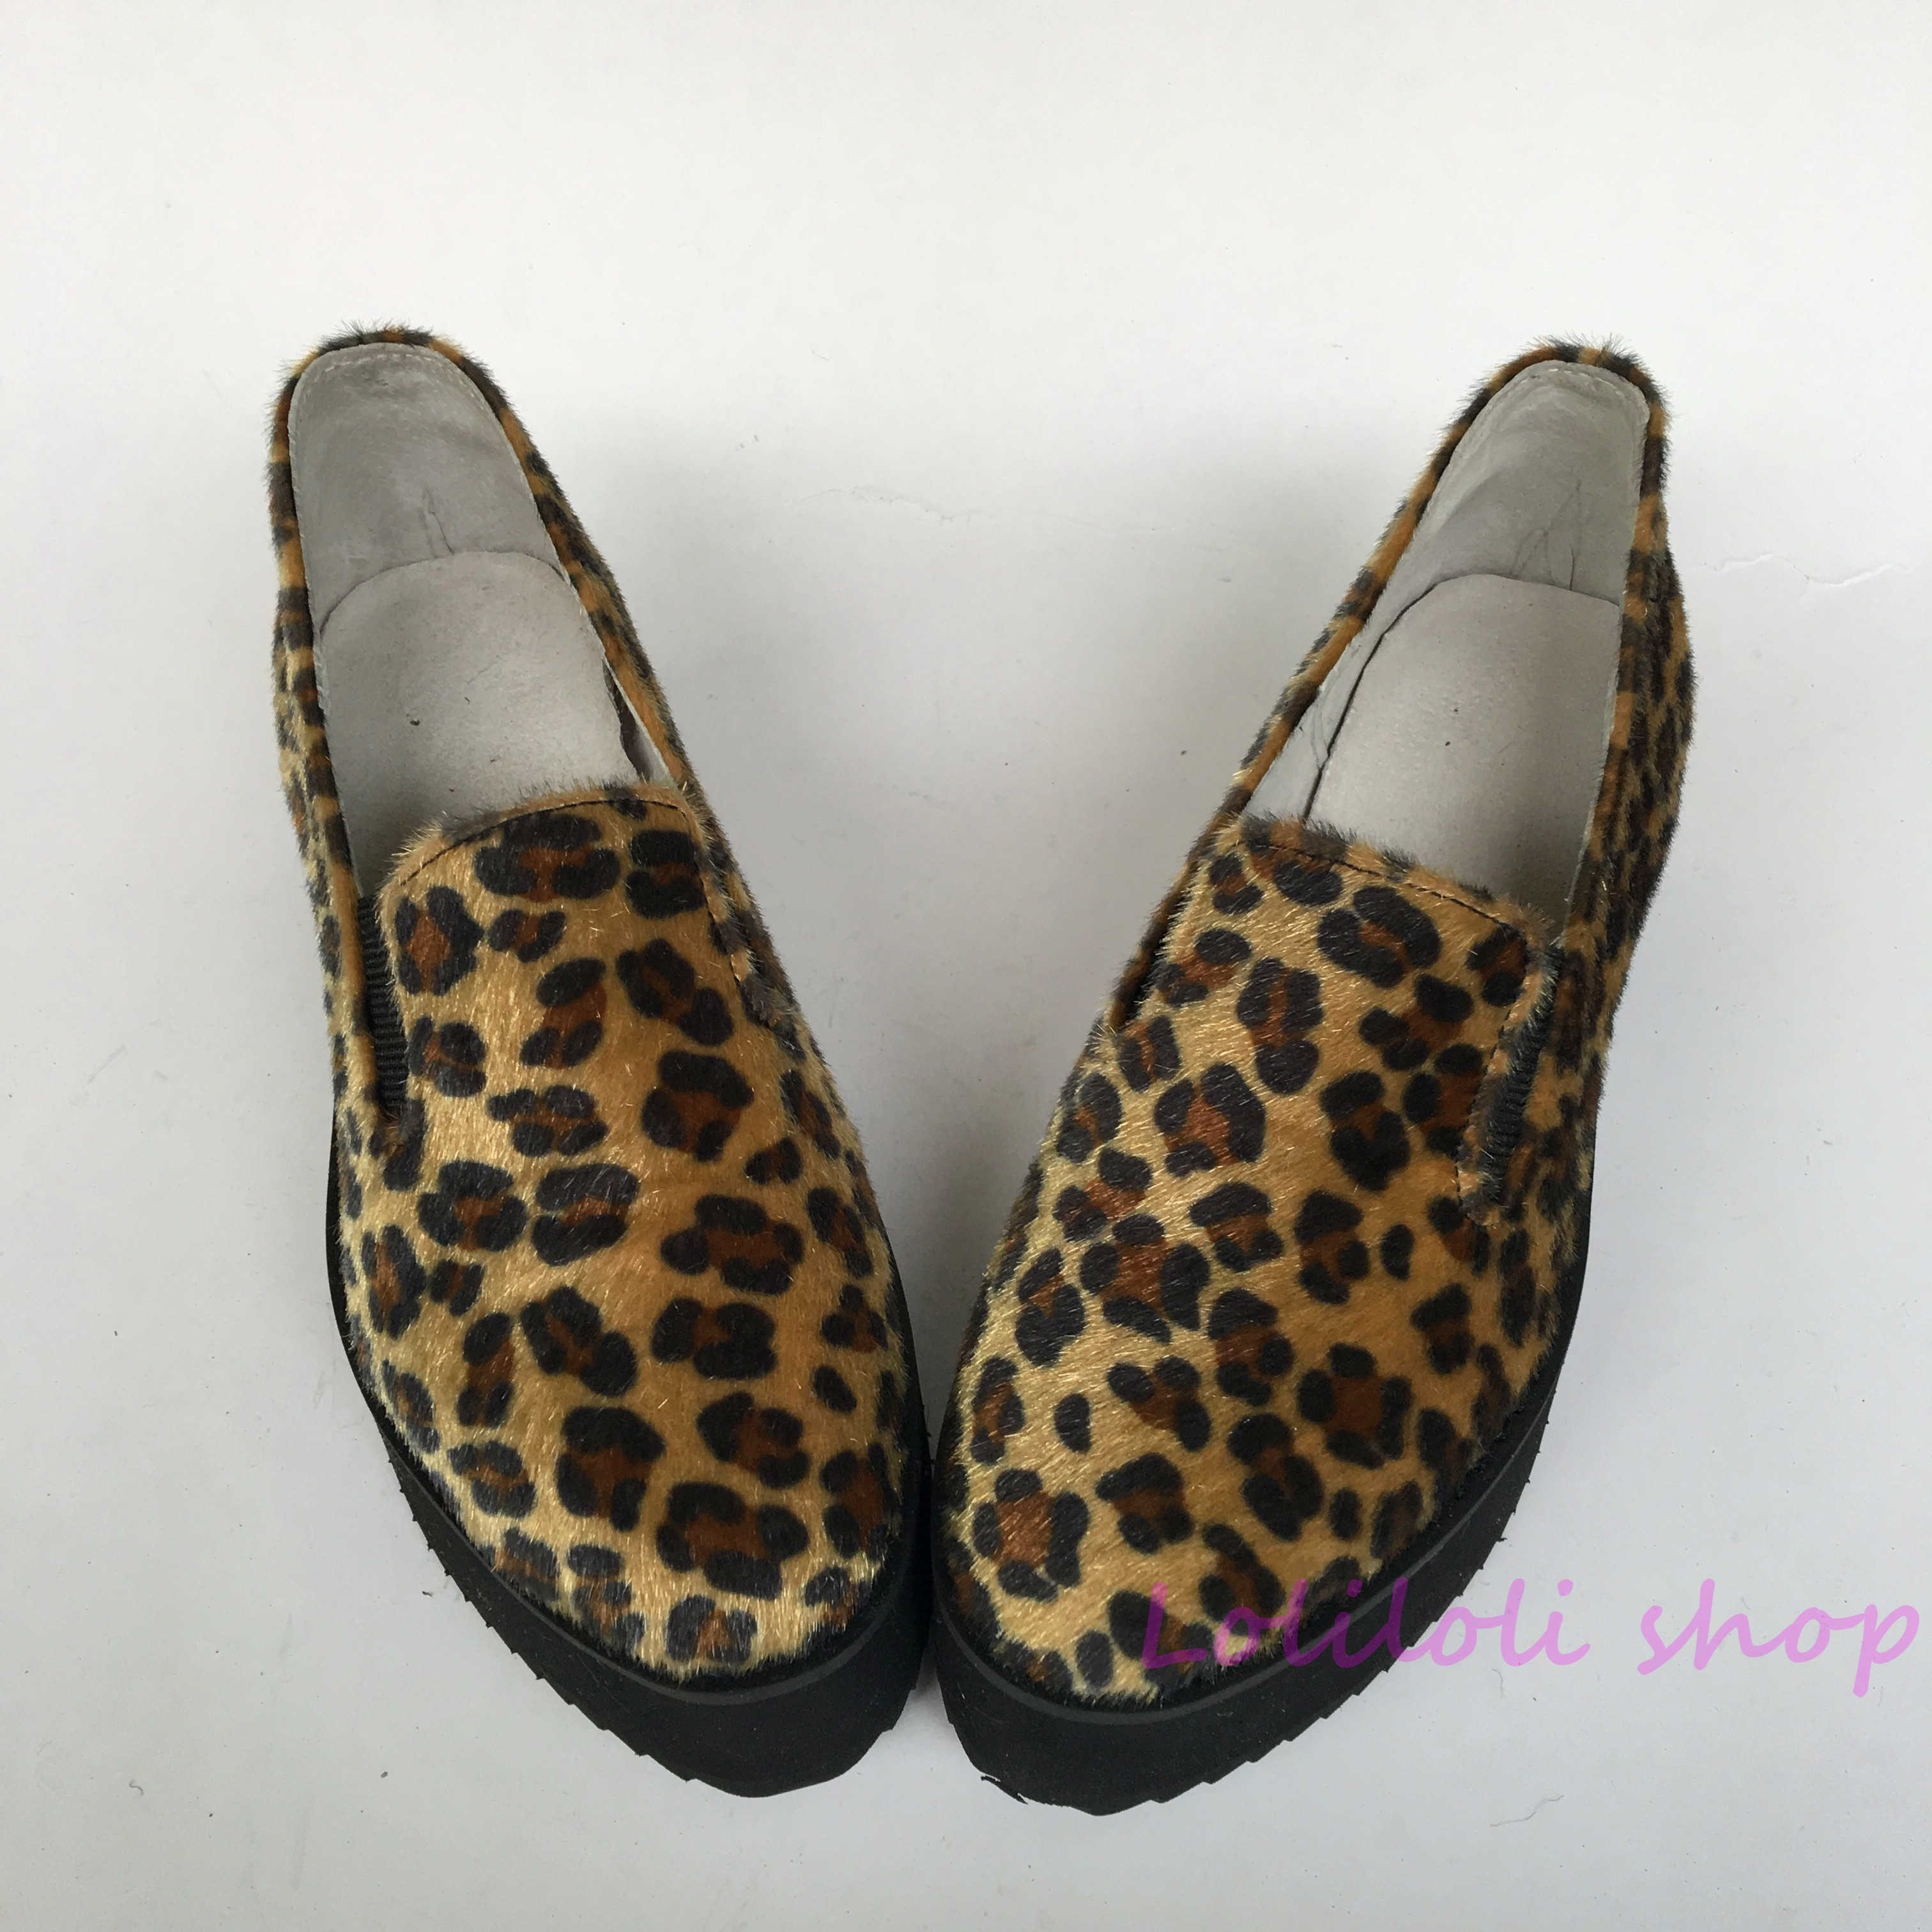 Princess swee Leopard lolita shoes horsehair leopard elastic sponge cake shoes Hand made Customer customization Large size 5170 fashion tassels ornament leopard pattern flat shoes loafers shoes black leopard pair size 38